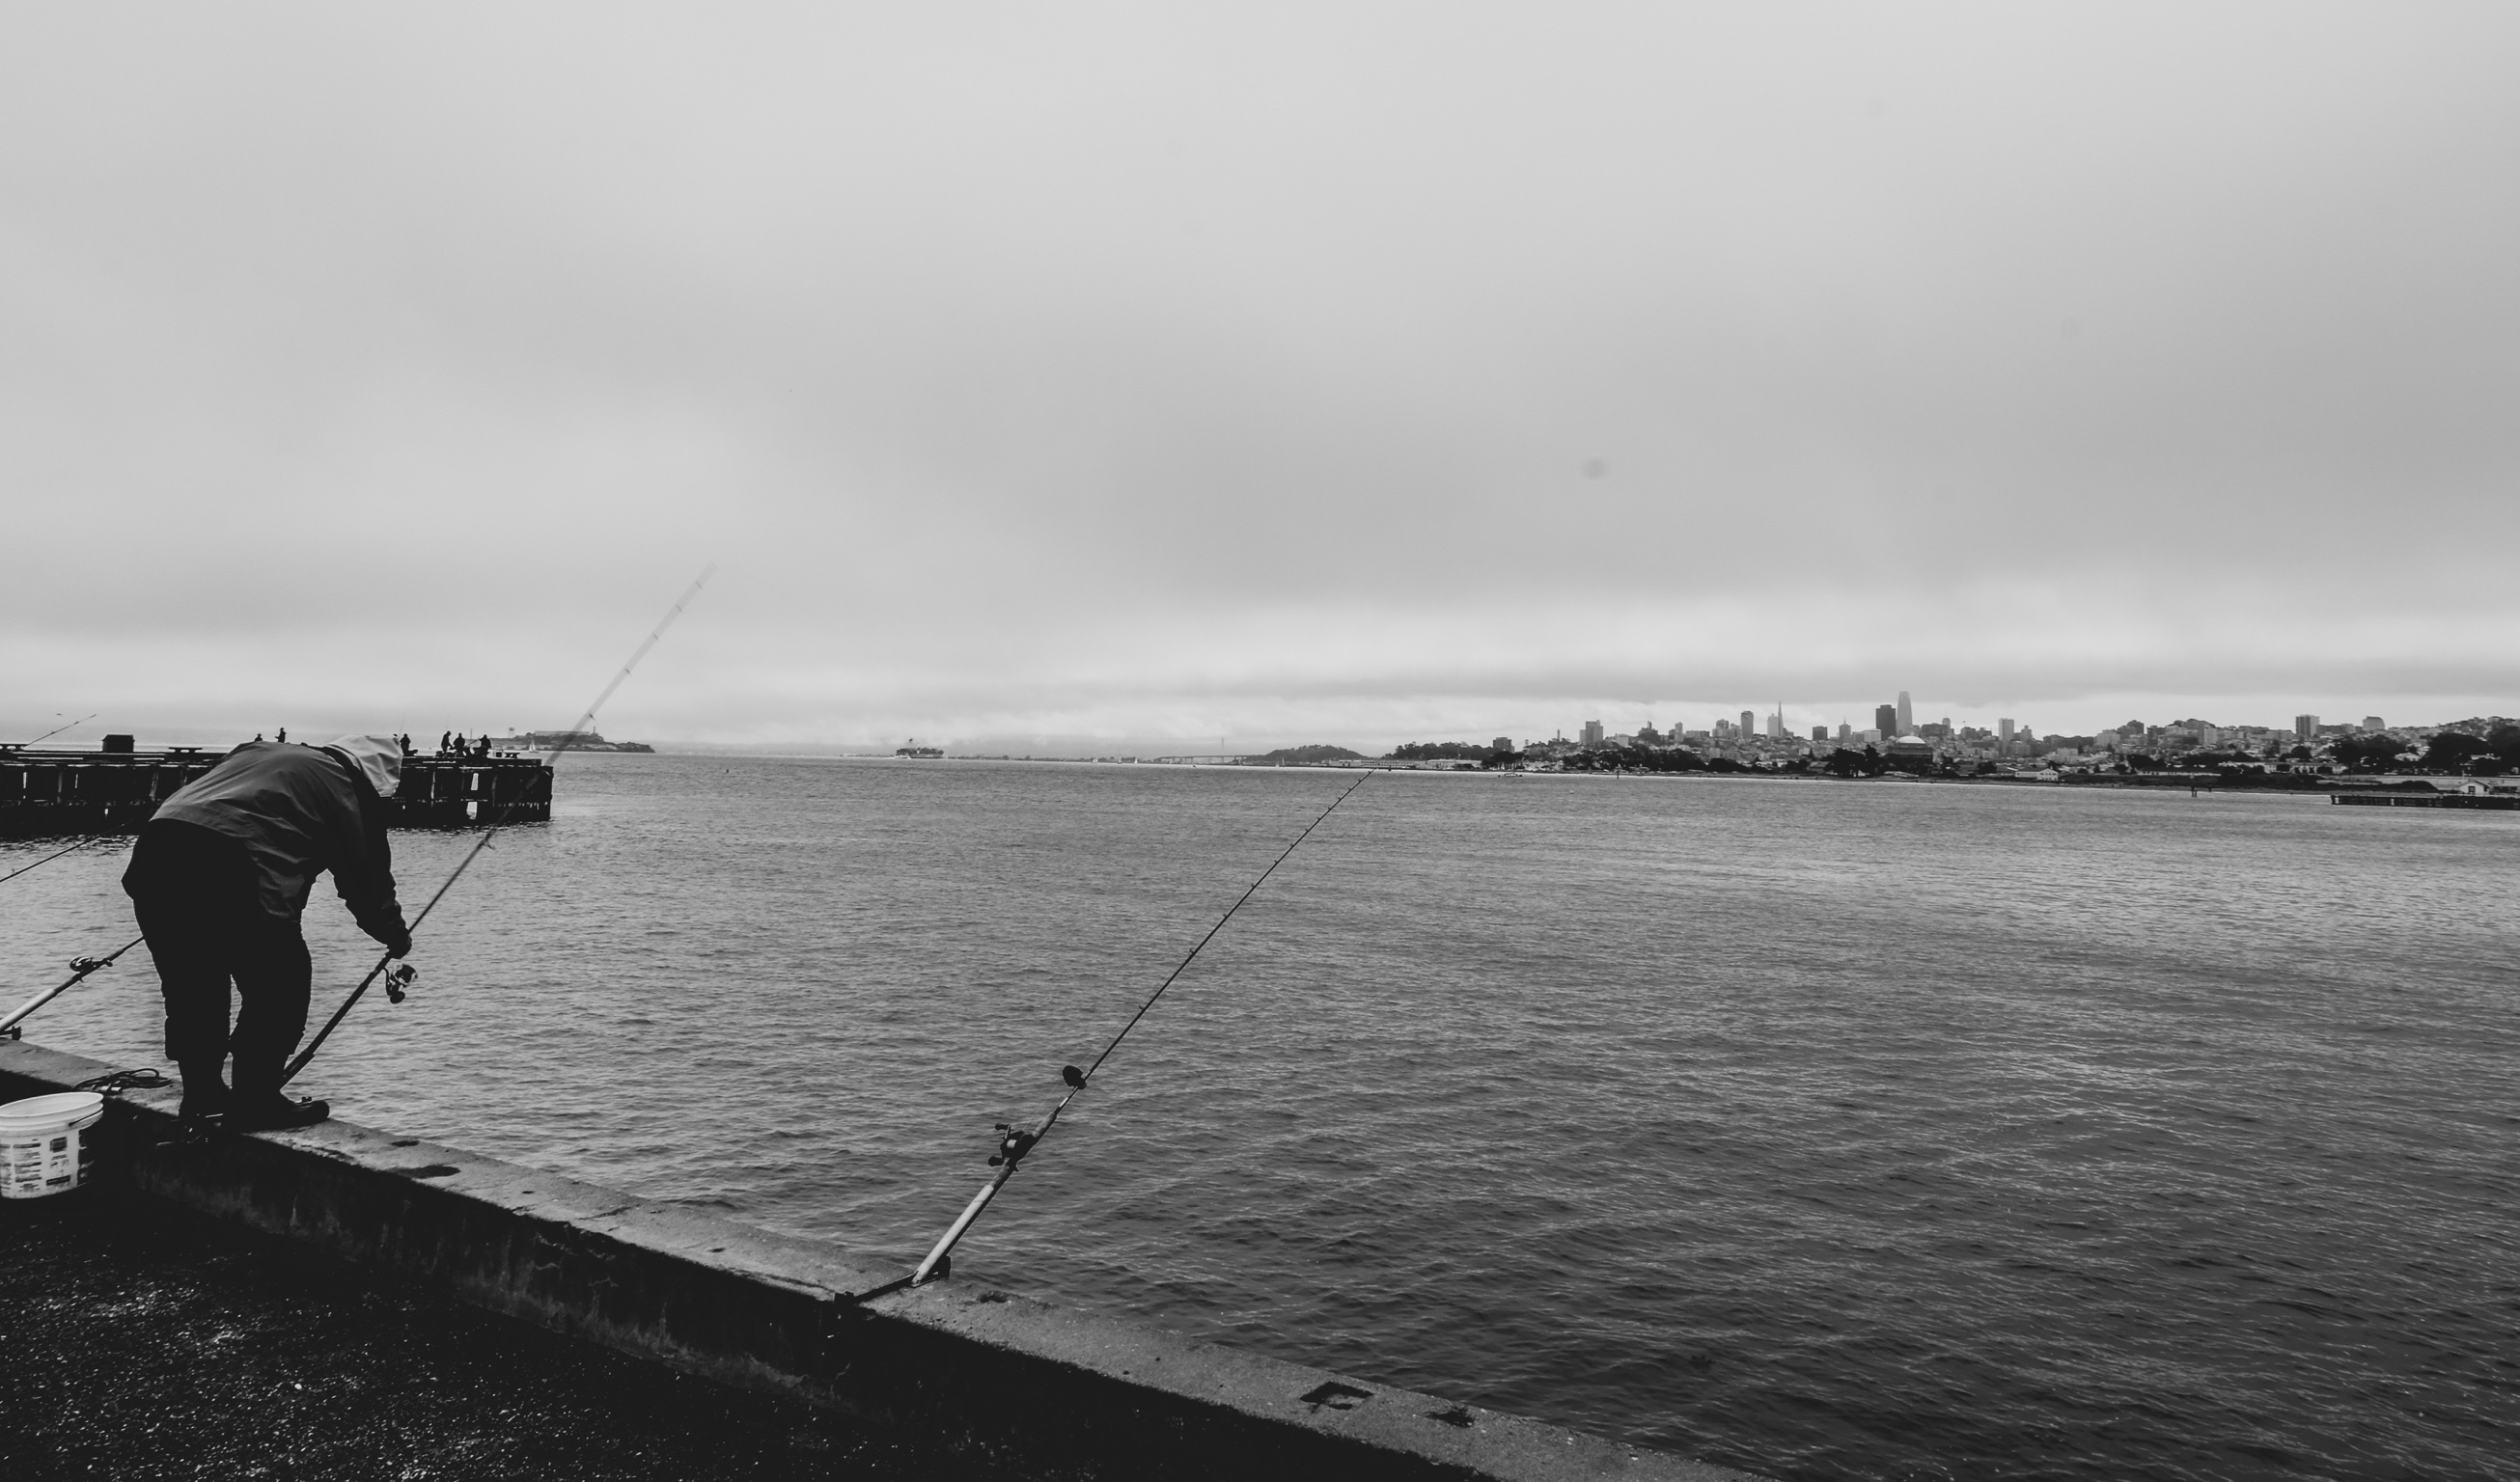 a man sets fishing poles on a pier during a dark cloudy day